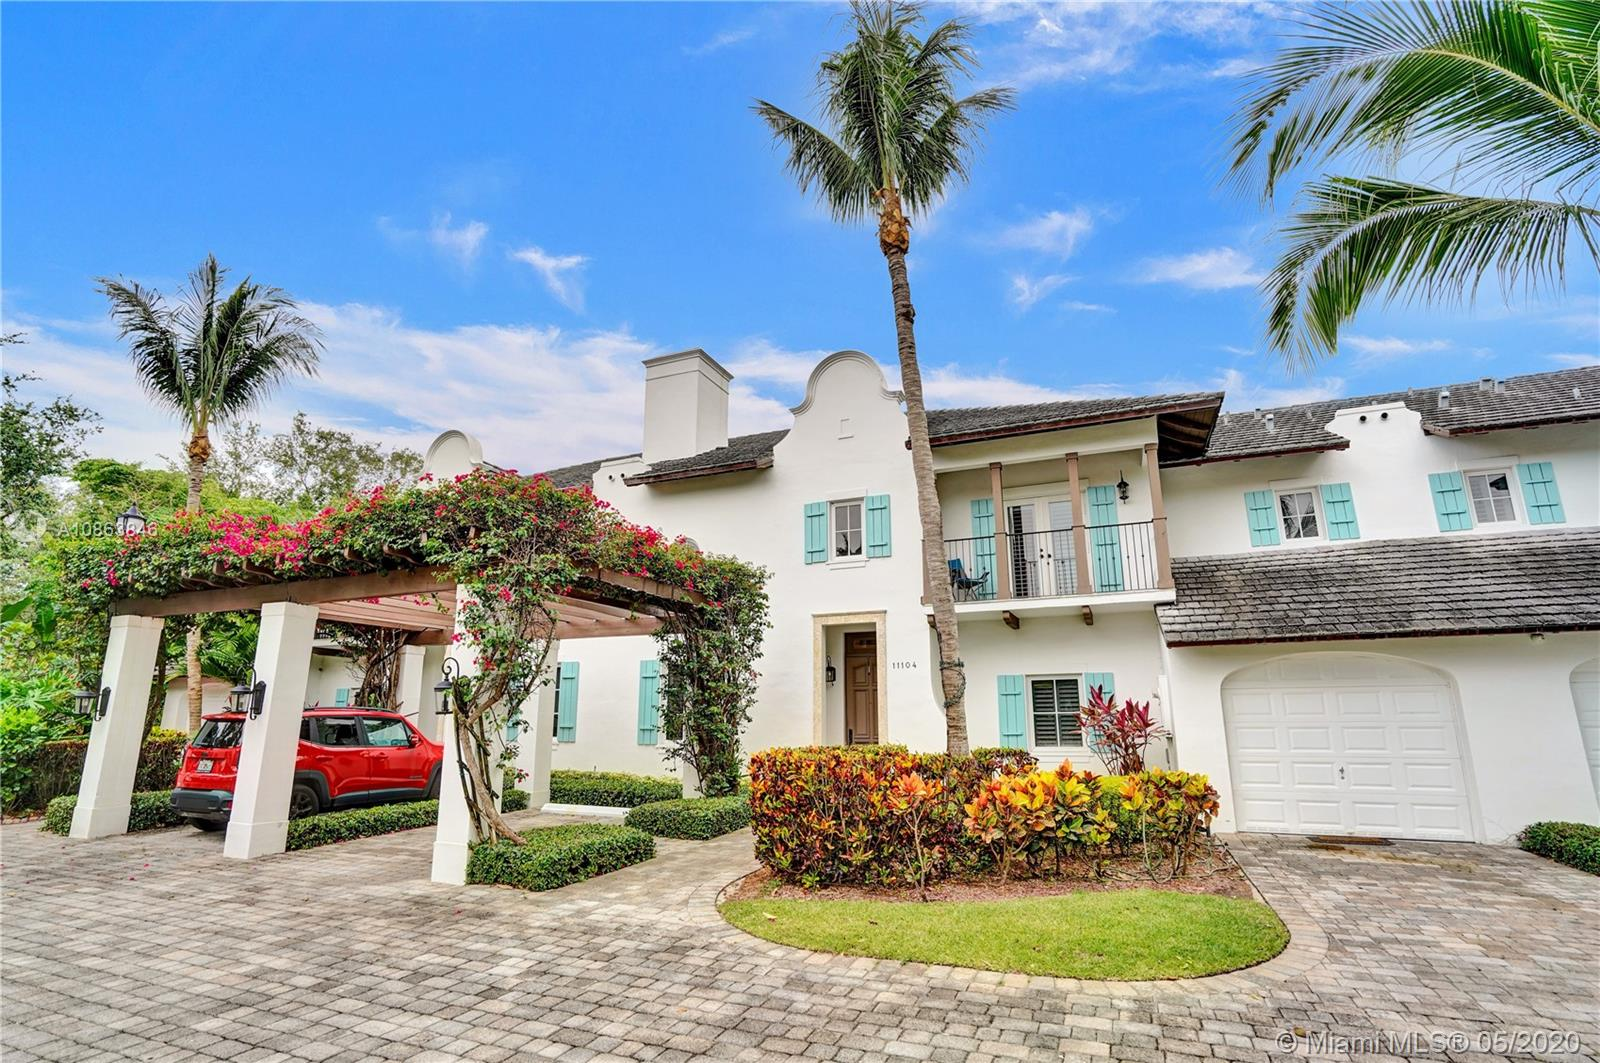 11104 SW 79th Path, Miami, Florida 33156, 4 Bedrooms Bedrooms, ,4 BathroomsBathrooms,Residential,For Sale,11104 SW 79th Path,A10863846